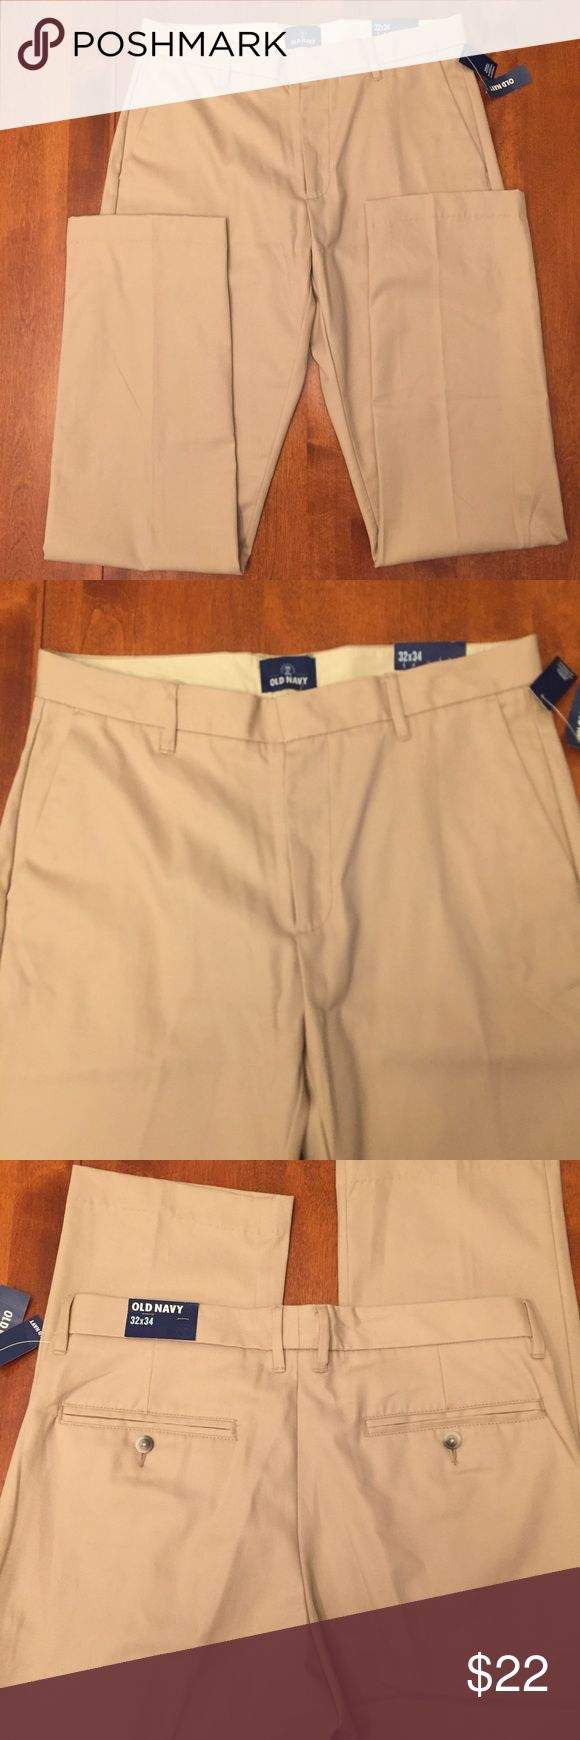 NWT Old Navy Flat front Khakis. Size 32 x 34 Old Navy flat front khakis. Size 32 x 34 Old Navy Pants Chinos & Khakis